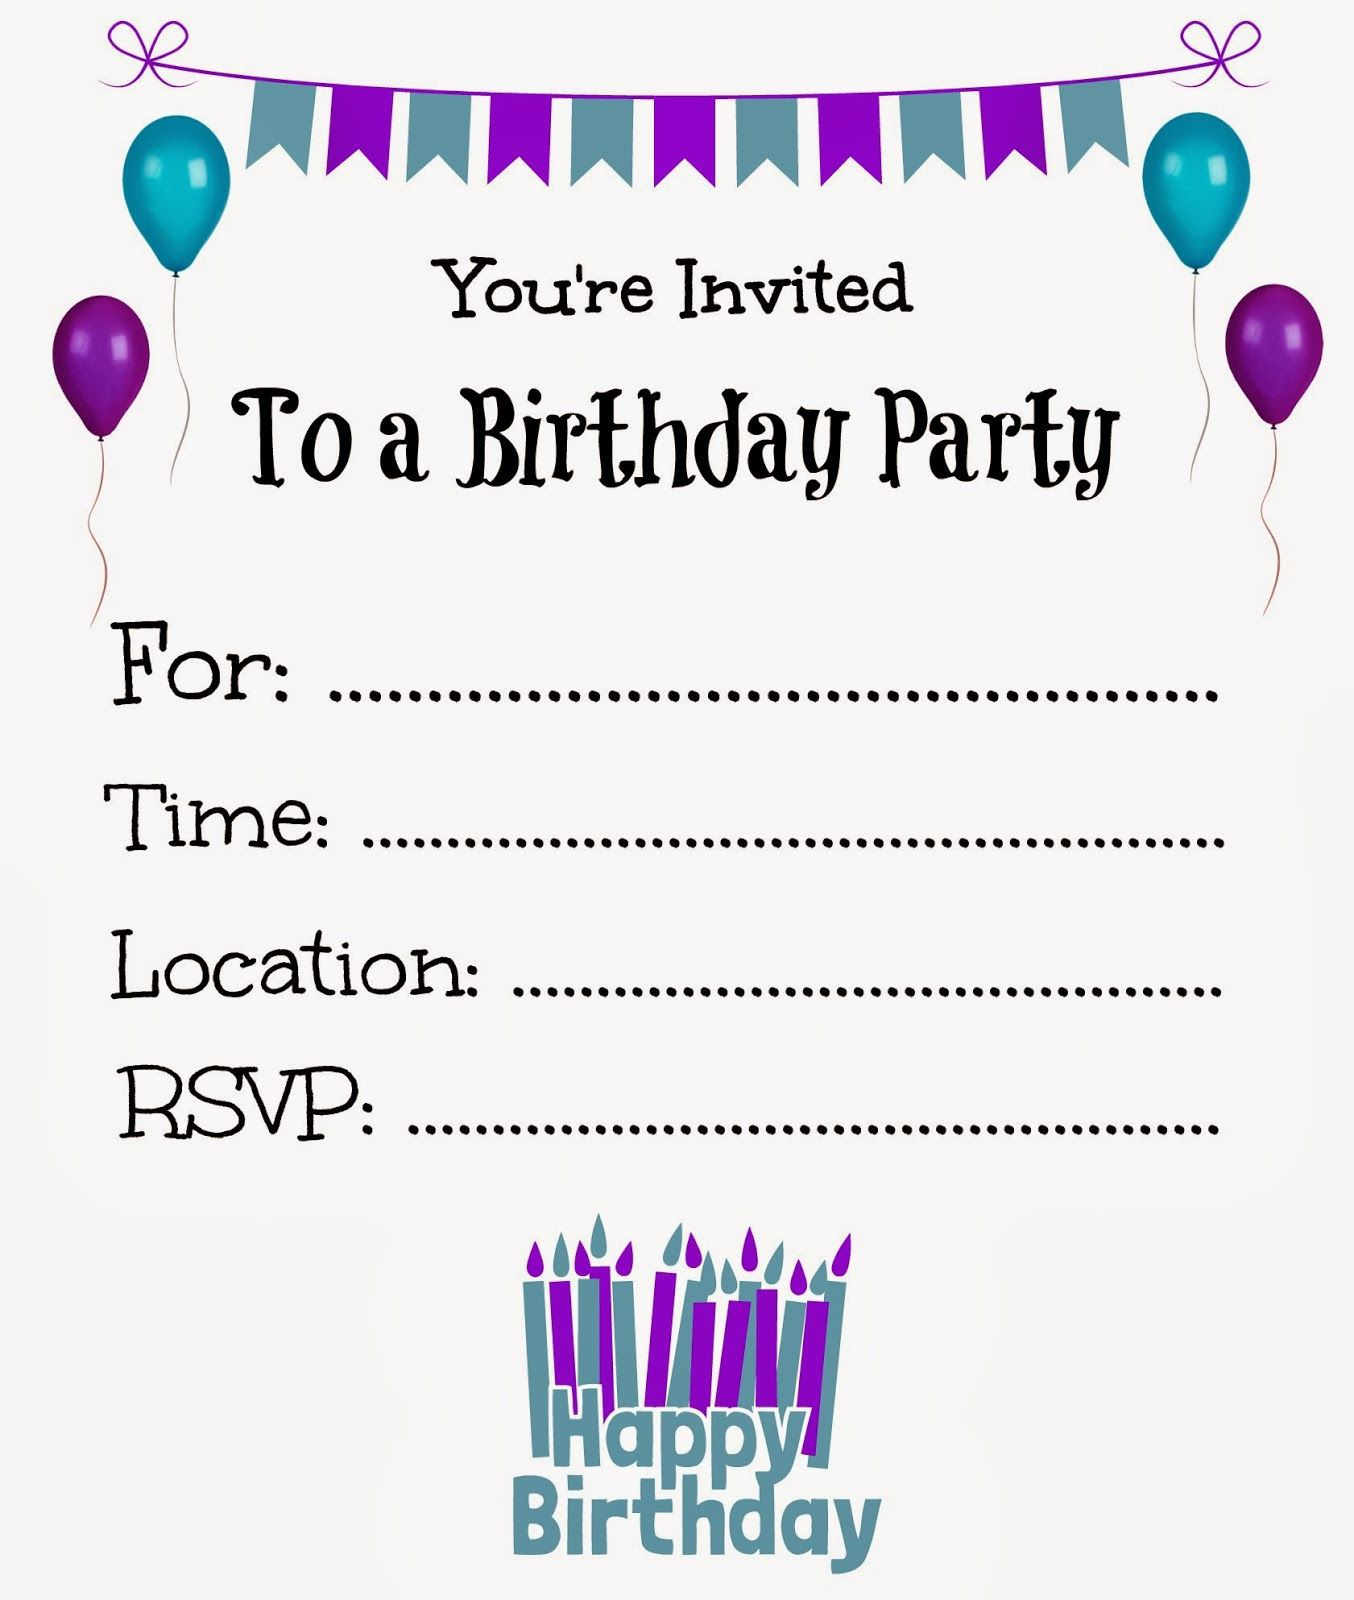 009 Stunning Free Party Invitation Template With Photo Idea  Christma PhotoshopFull